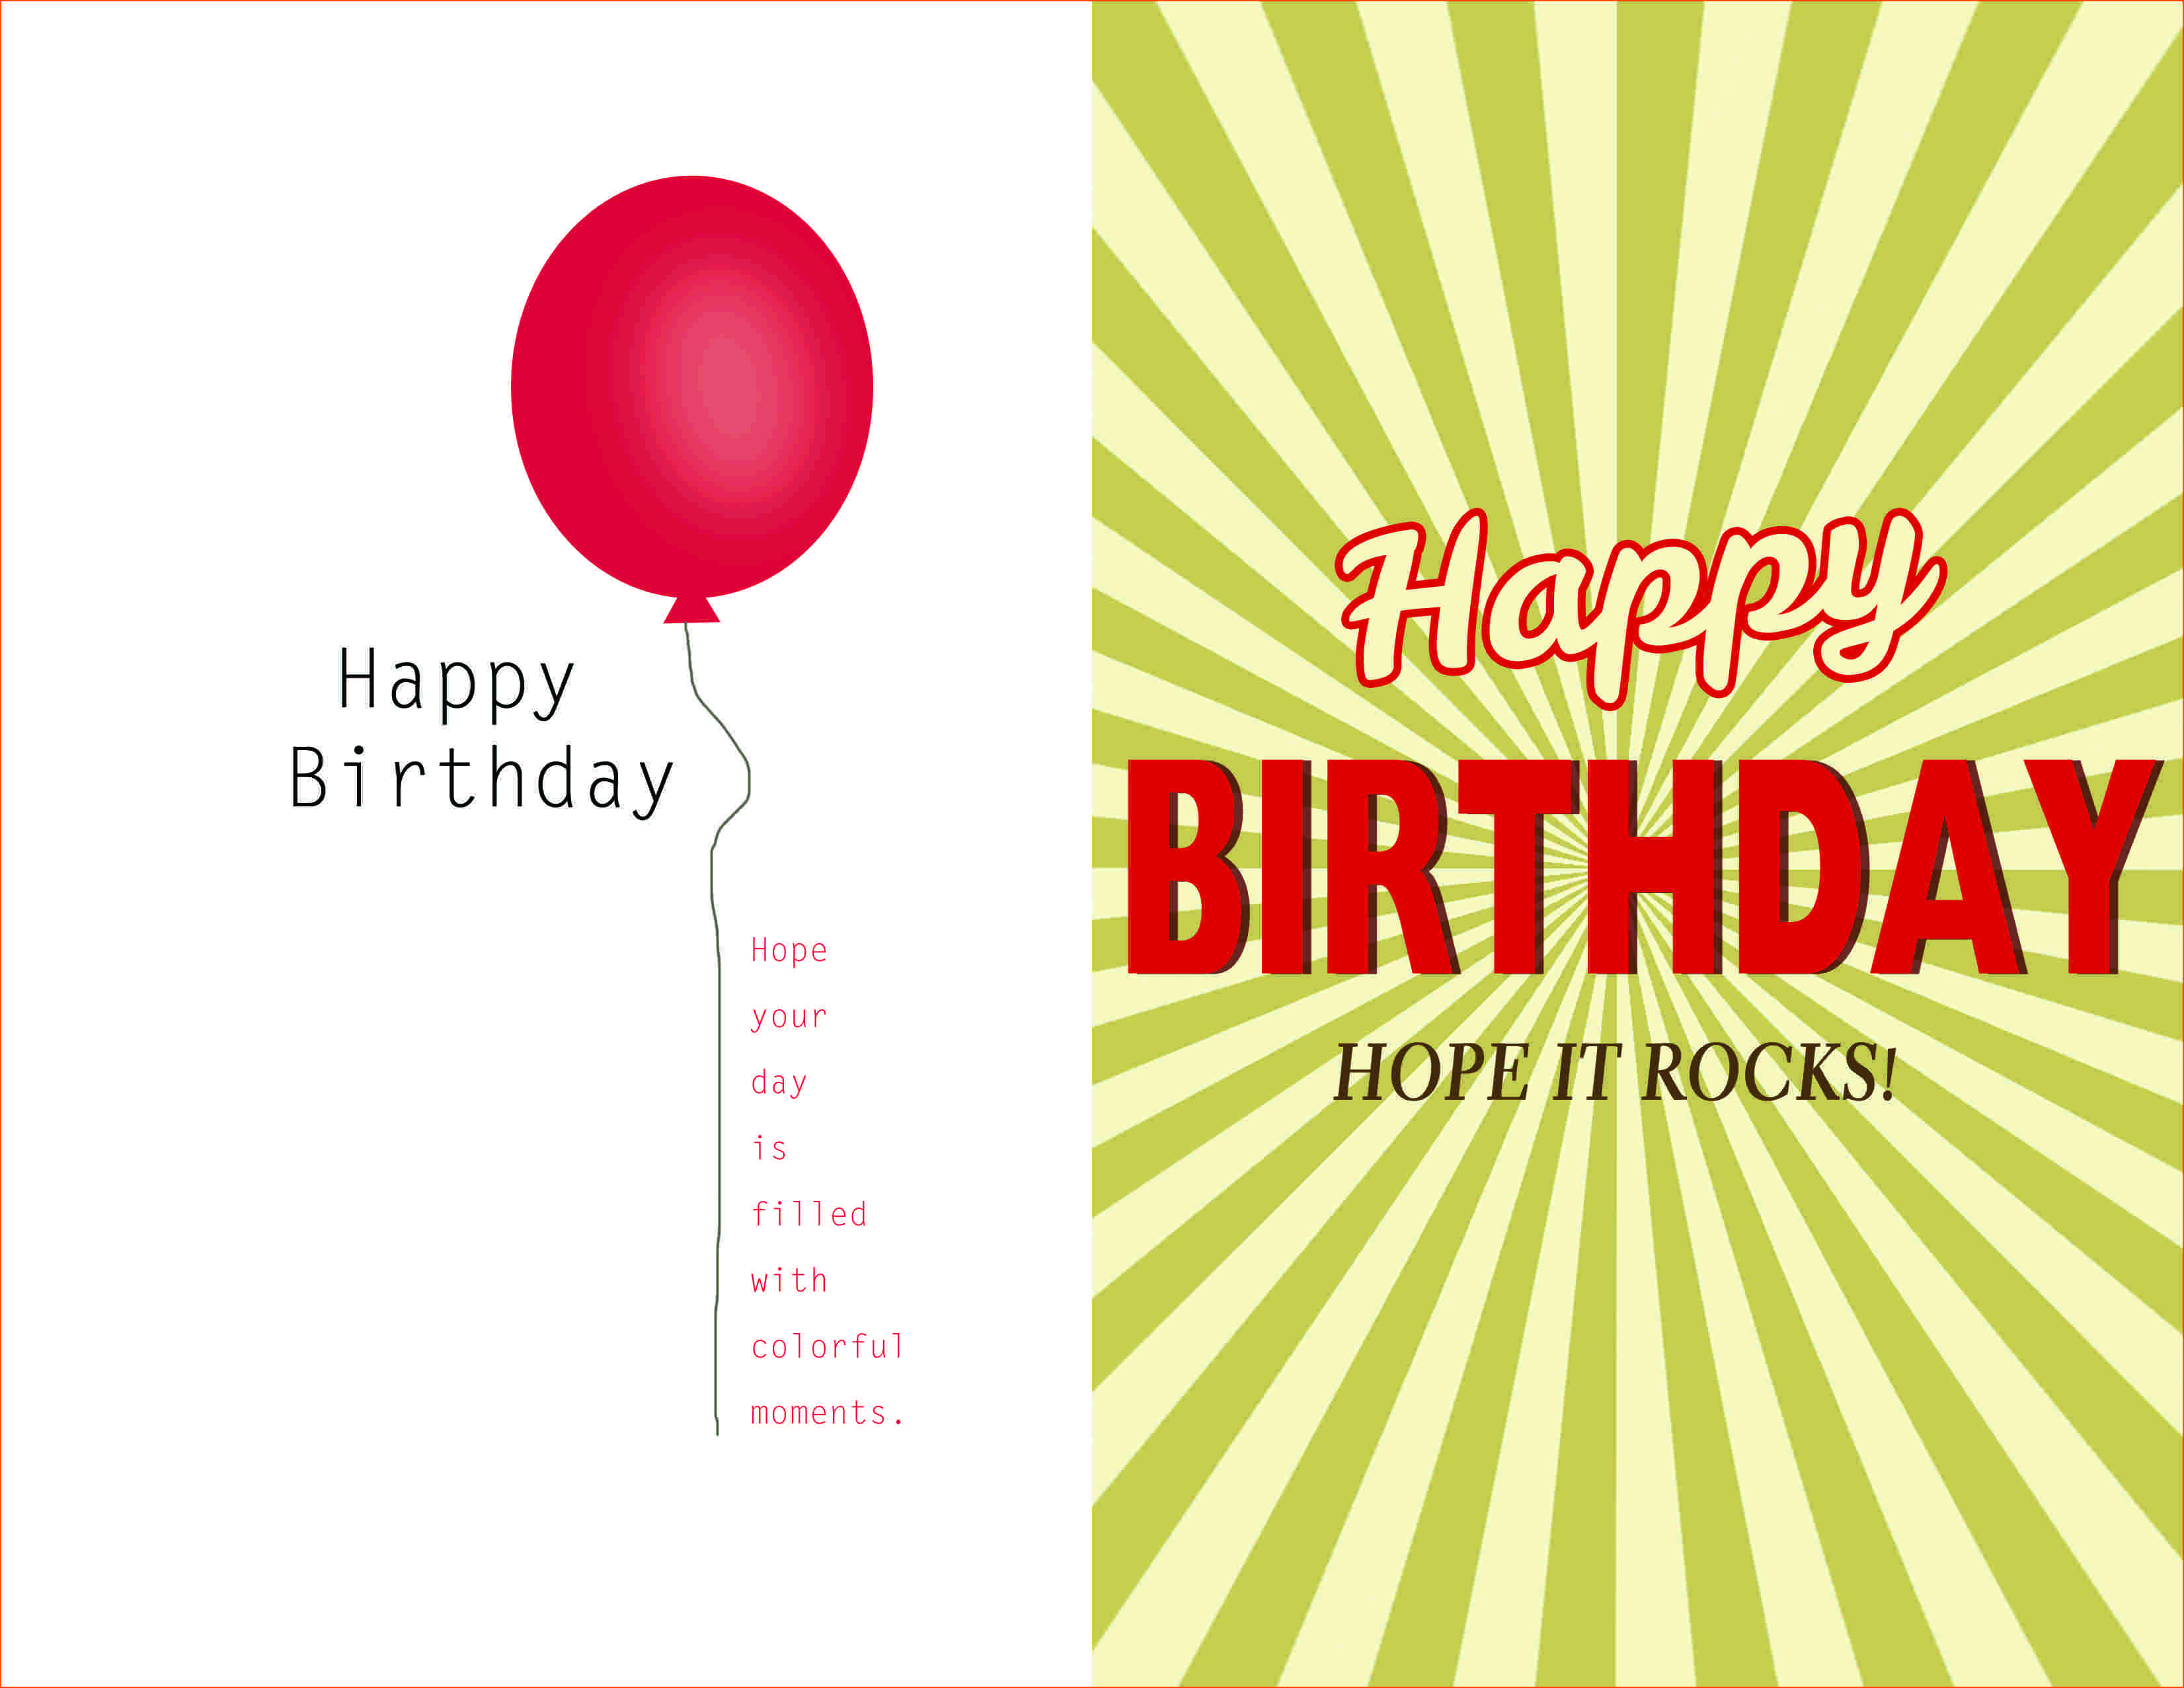 002 Magnificent Birthday Card Template Word Quarter Fold Picture Full